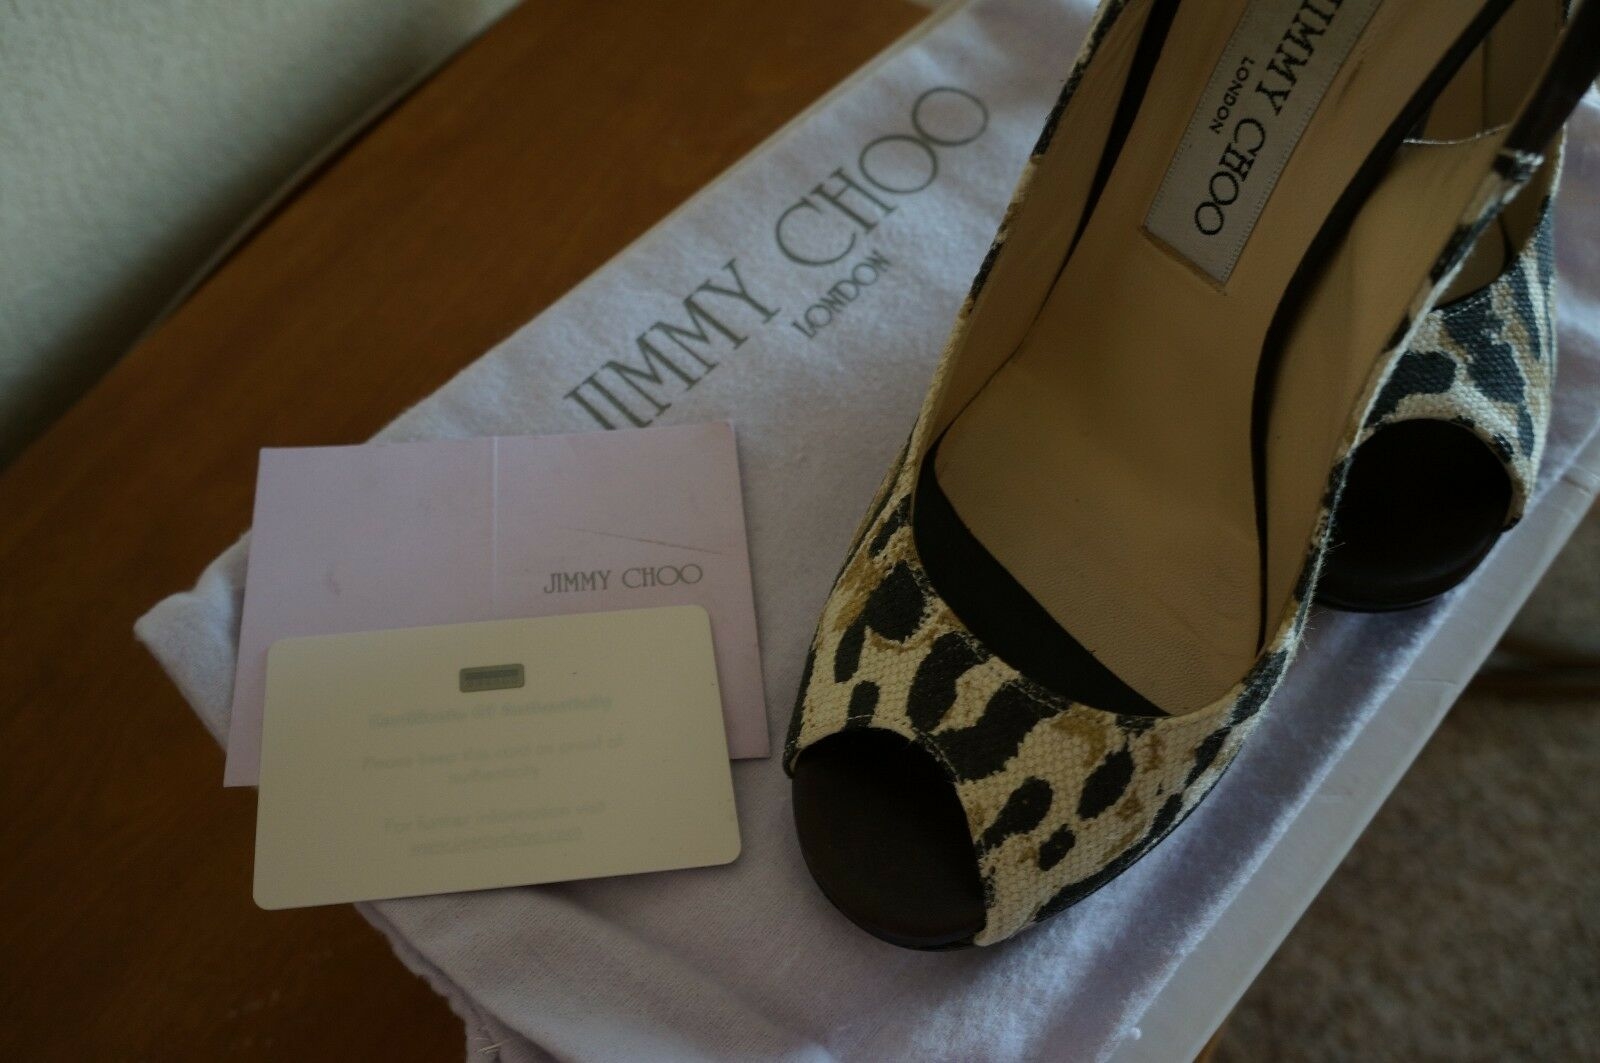 Jimmy Choo Canvas Leopard Peep Toe 38.5 Platform Slingback Pumps Sandales 38.5 Toe US 7.5 9045a6